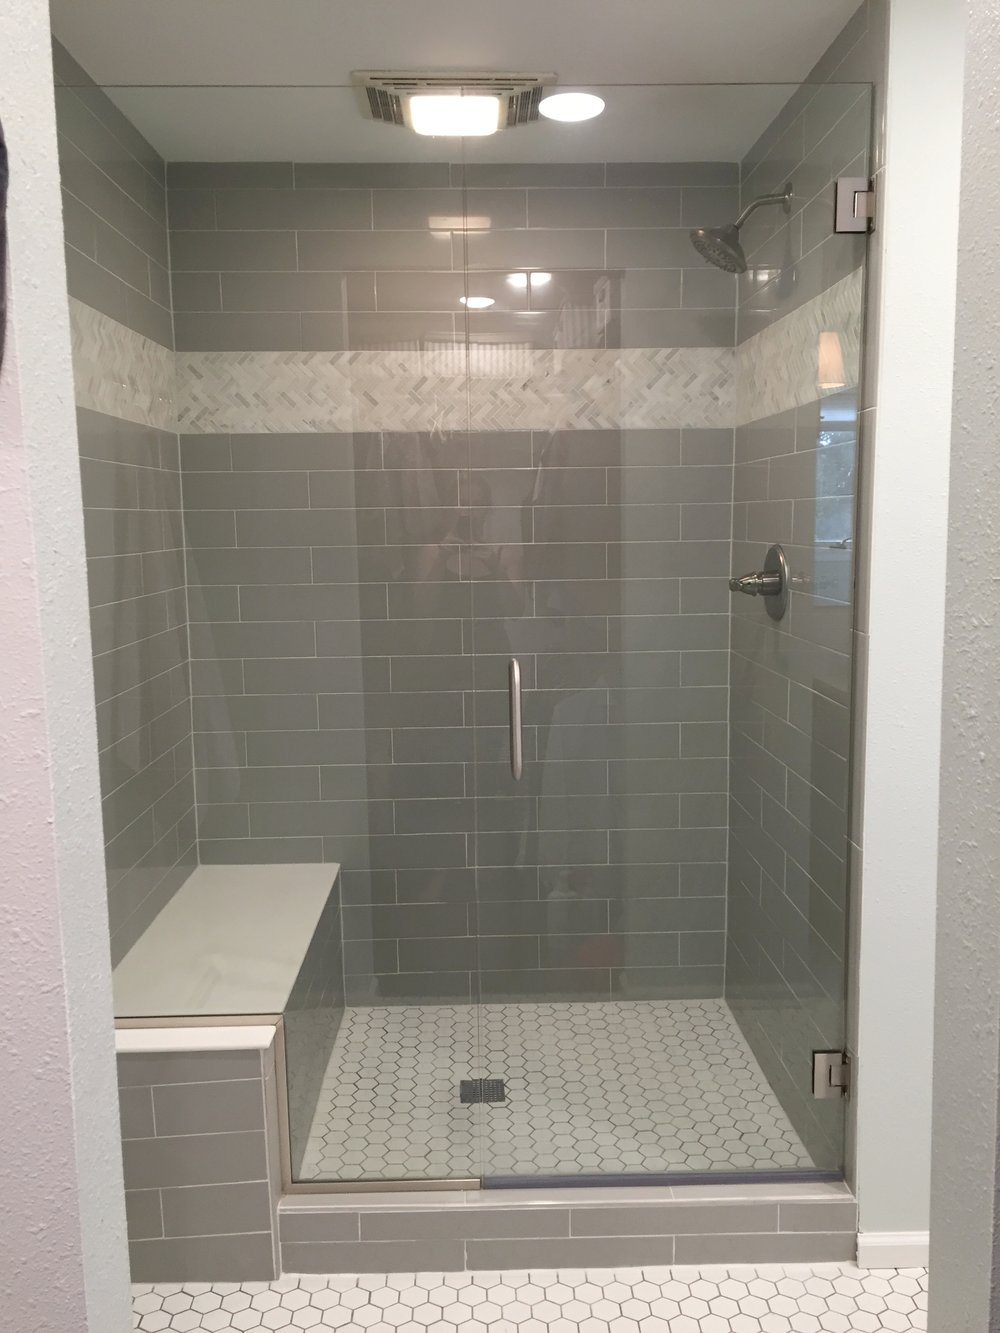 TIles are from The Tile Shop and the glass door is from Home Depot.